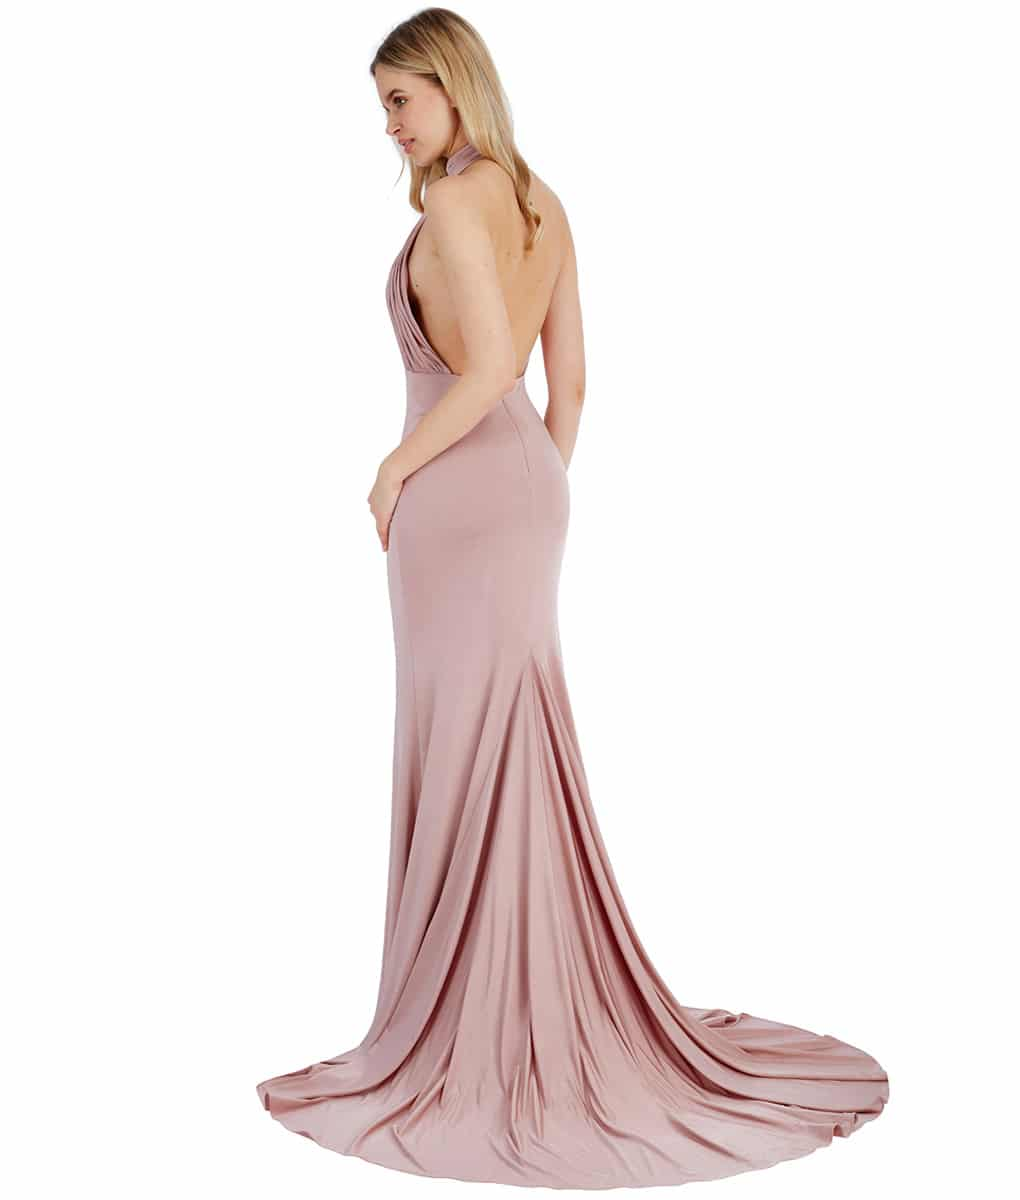 Alila Blush Backless Gown